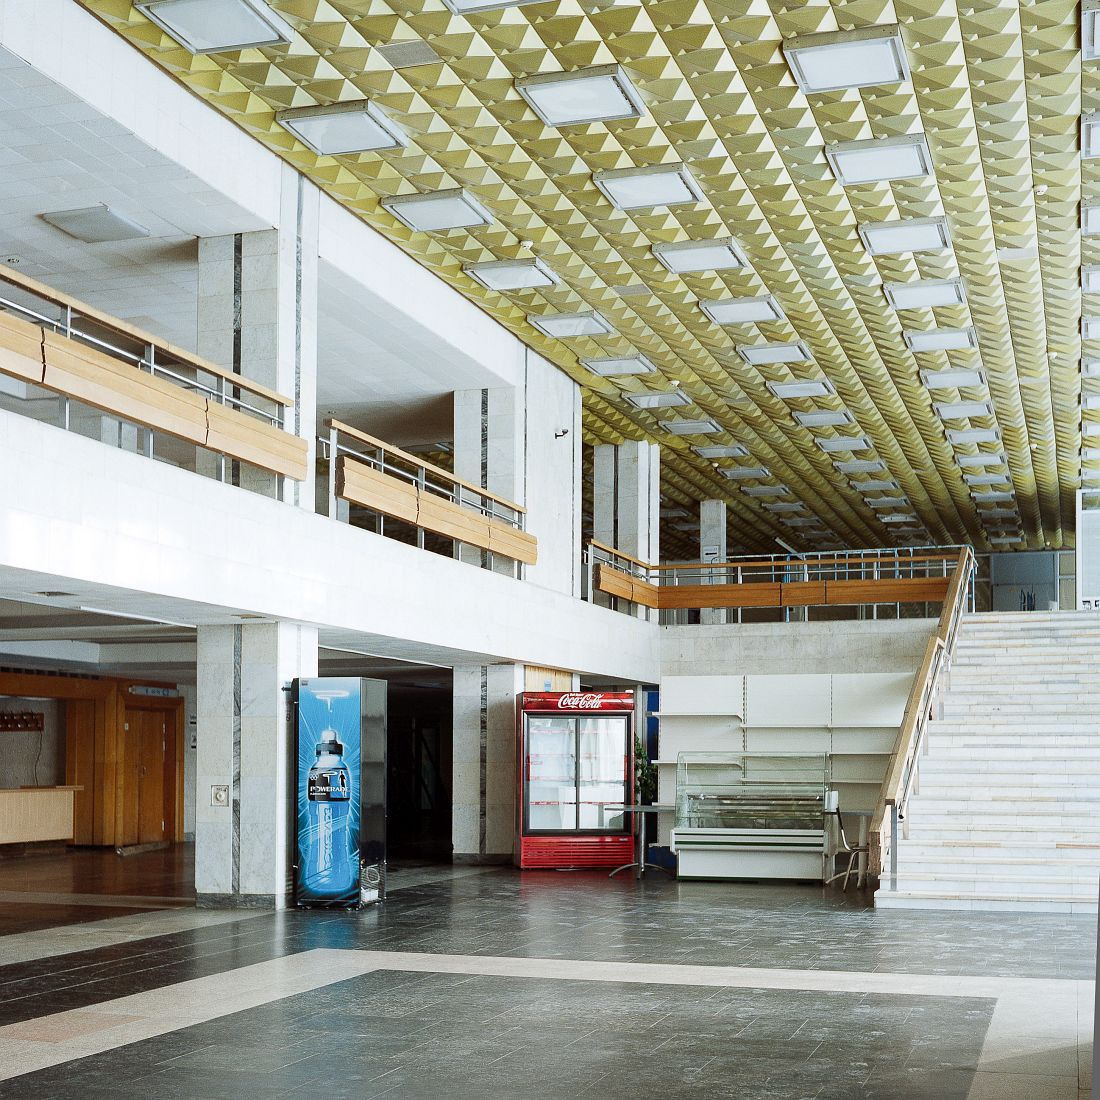 Interior of Dynamo Stadium. Dynamo Sports Palace was completed in 1980 and hosted basketball tournaments during Moscow Olympics. Currently it hosts amateur sports clubs and offices.